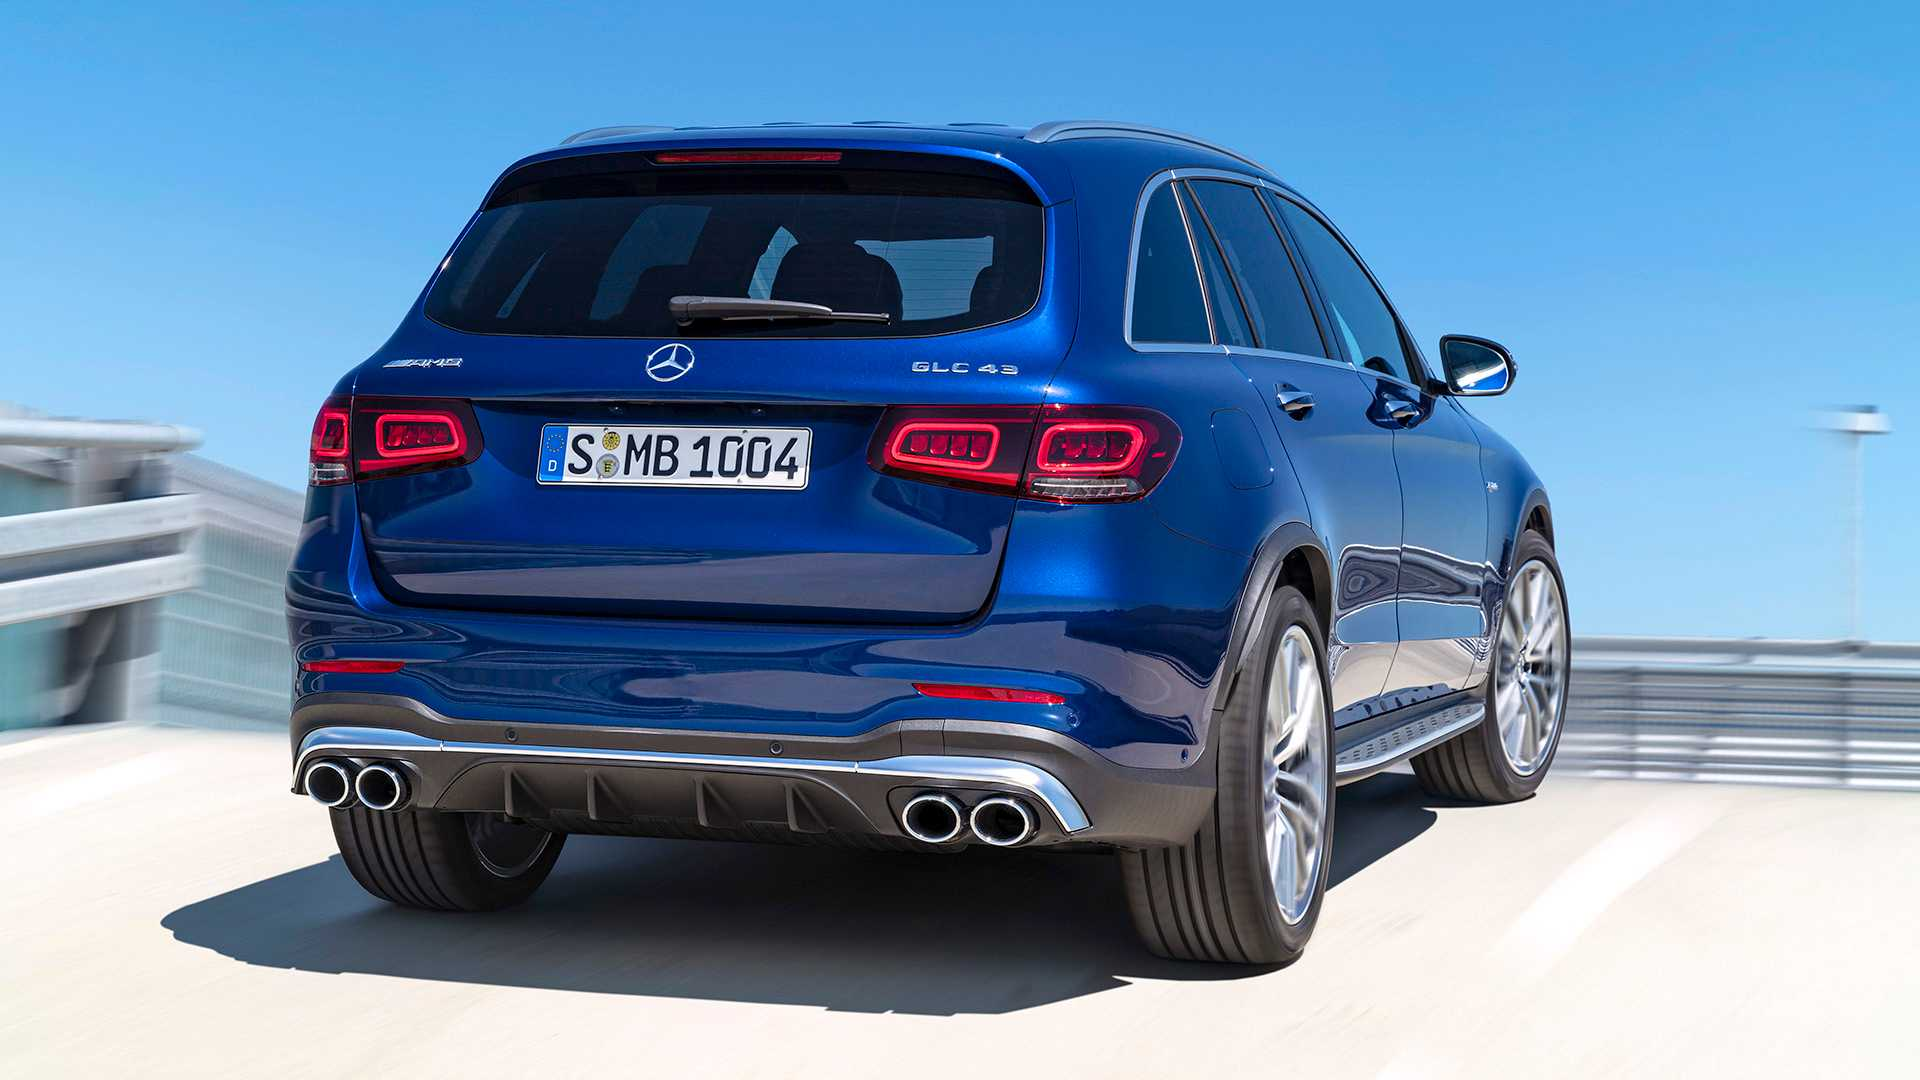 2020 Mercedes-AMG GLC 43 4MATIC Rear Wallpapers (10)